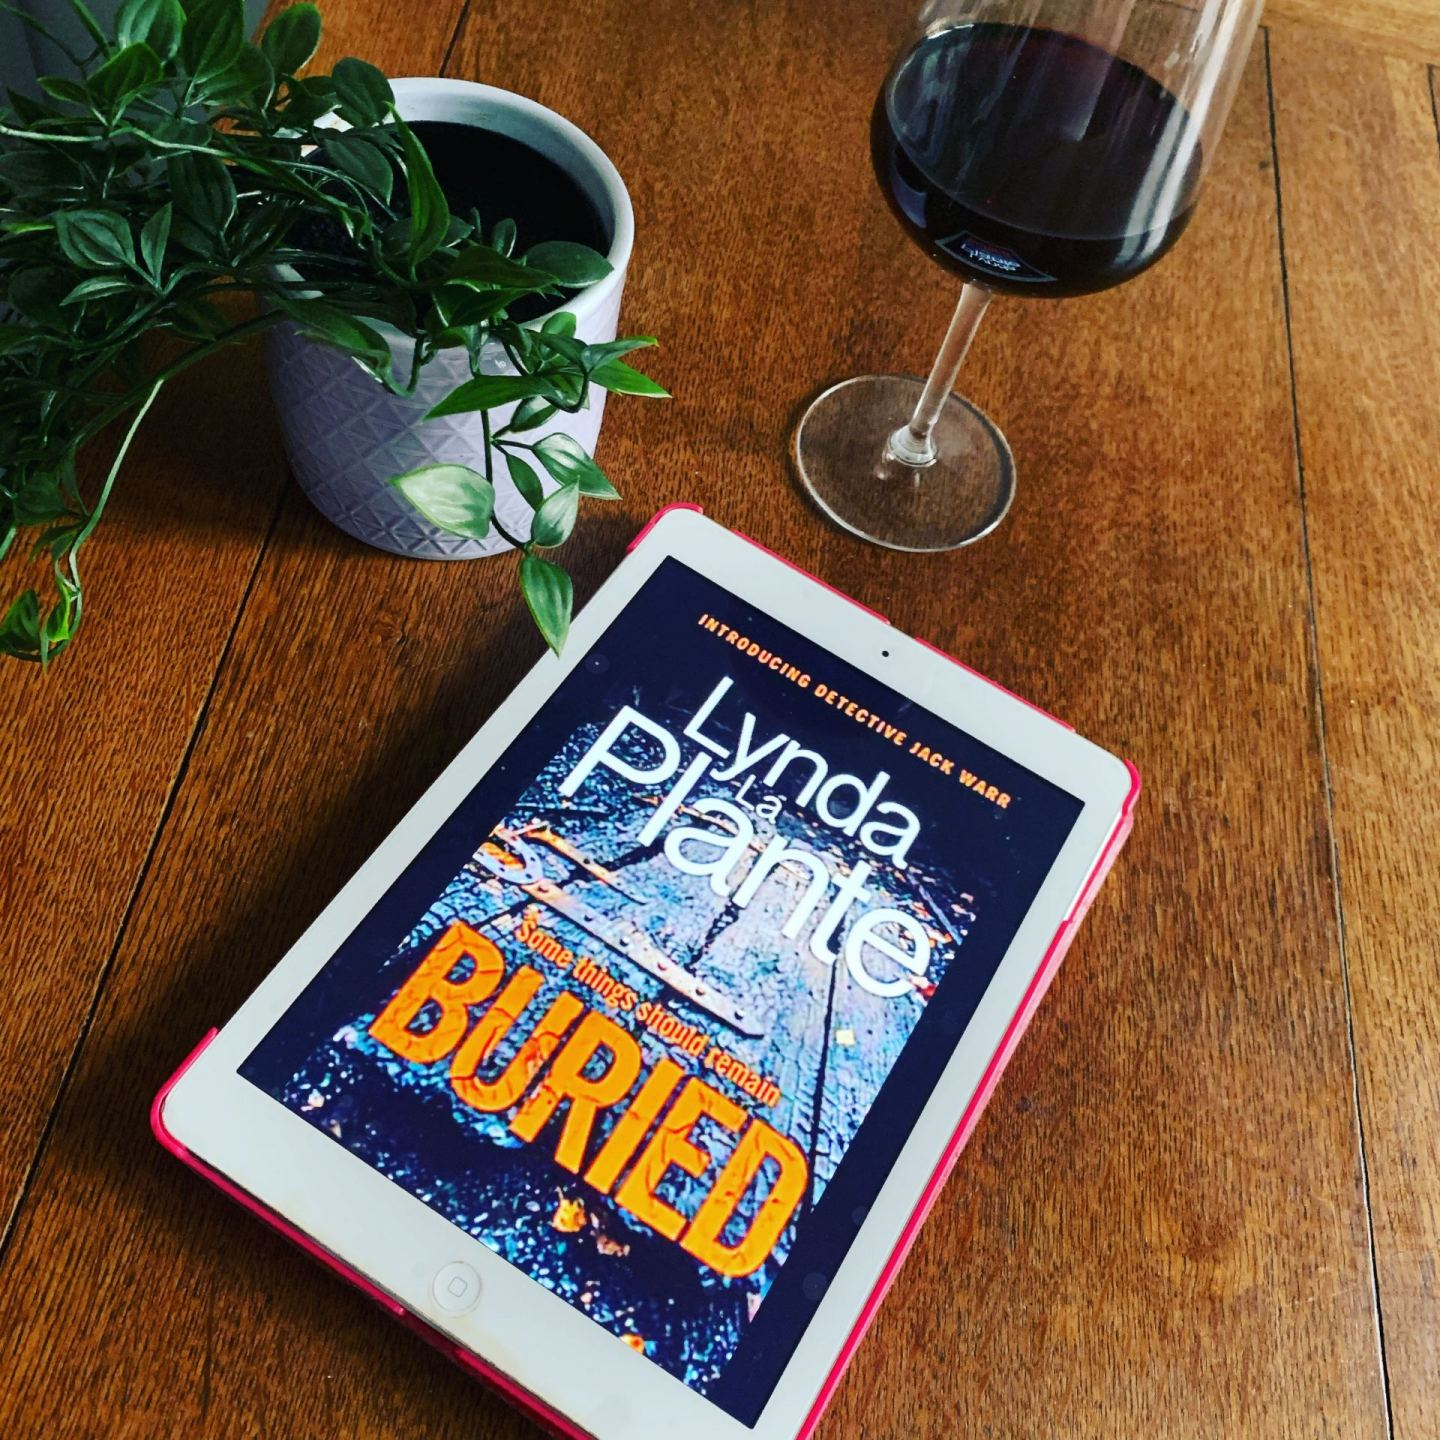 Buried; a crime thriller to get lost in